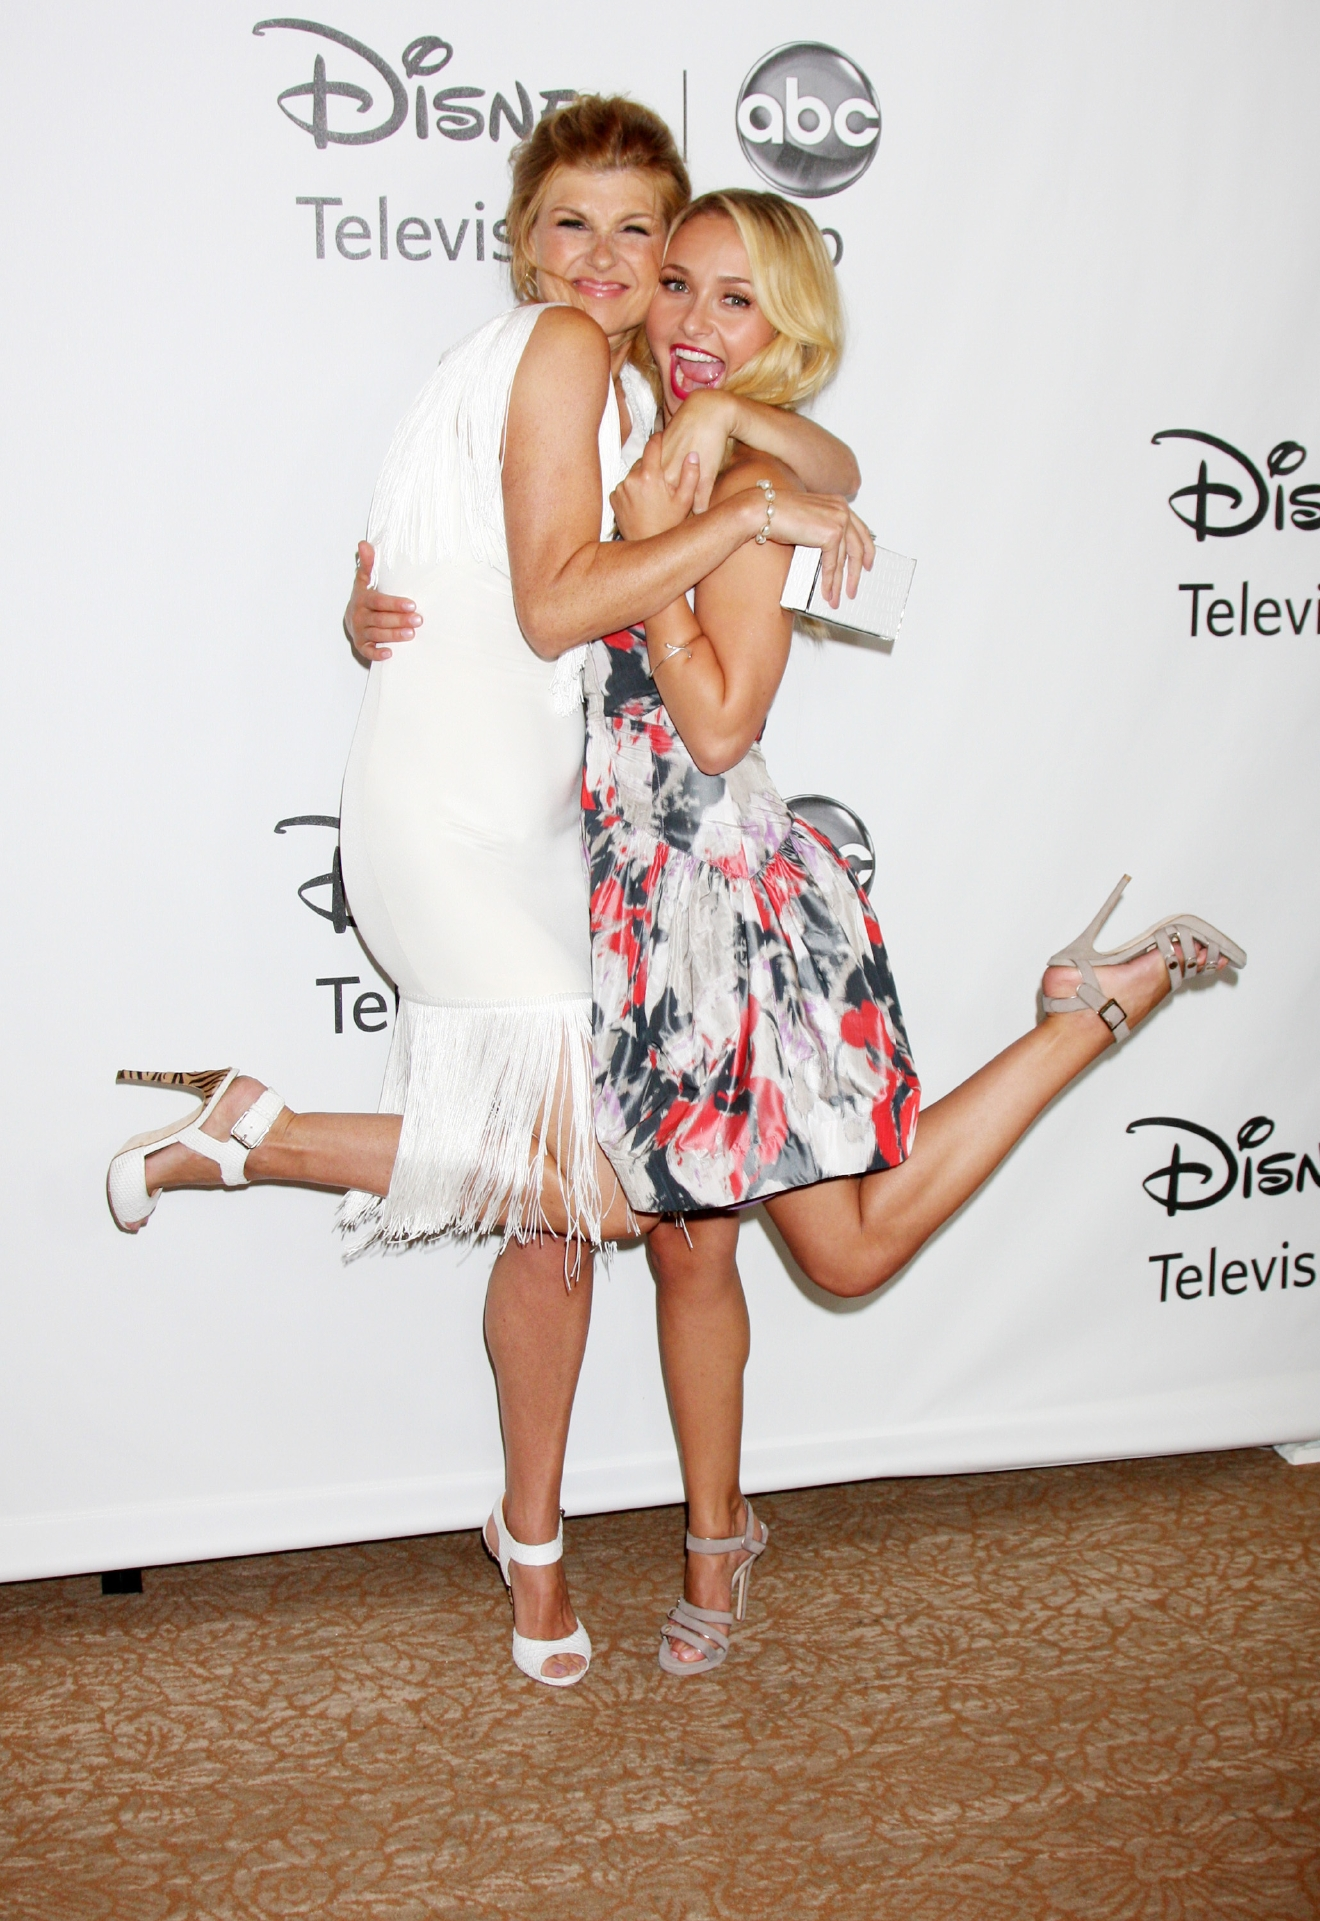 Connie Britton, Hayden Panettiere                  2012 TCA Summer Press Tour - Disney ABC Television Group Party held at The Beverly Hilton Hotel                  Beverly Hills, California - 27.07.12                                    Featuring: Connie Britton, Hayden Panettiere                  Where: United States                  When: 28 Jul 2012                  Credit: WENN